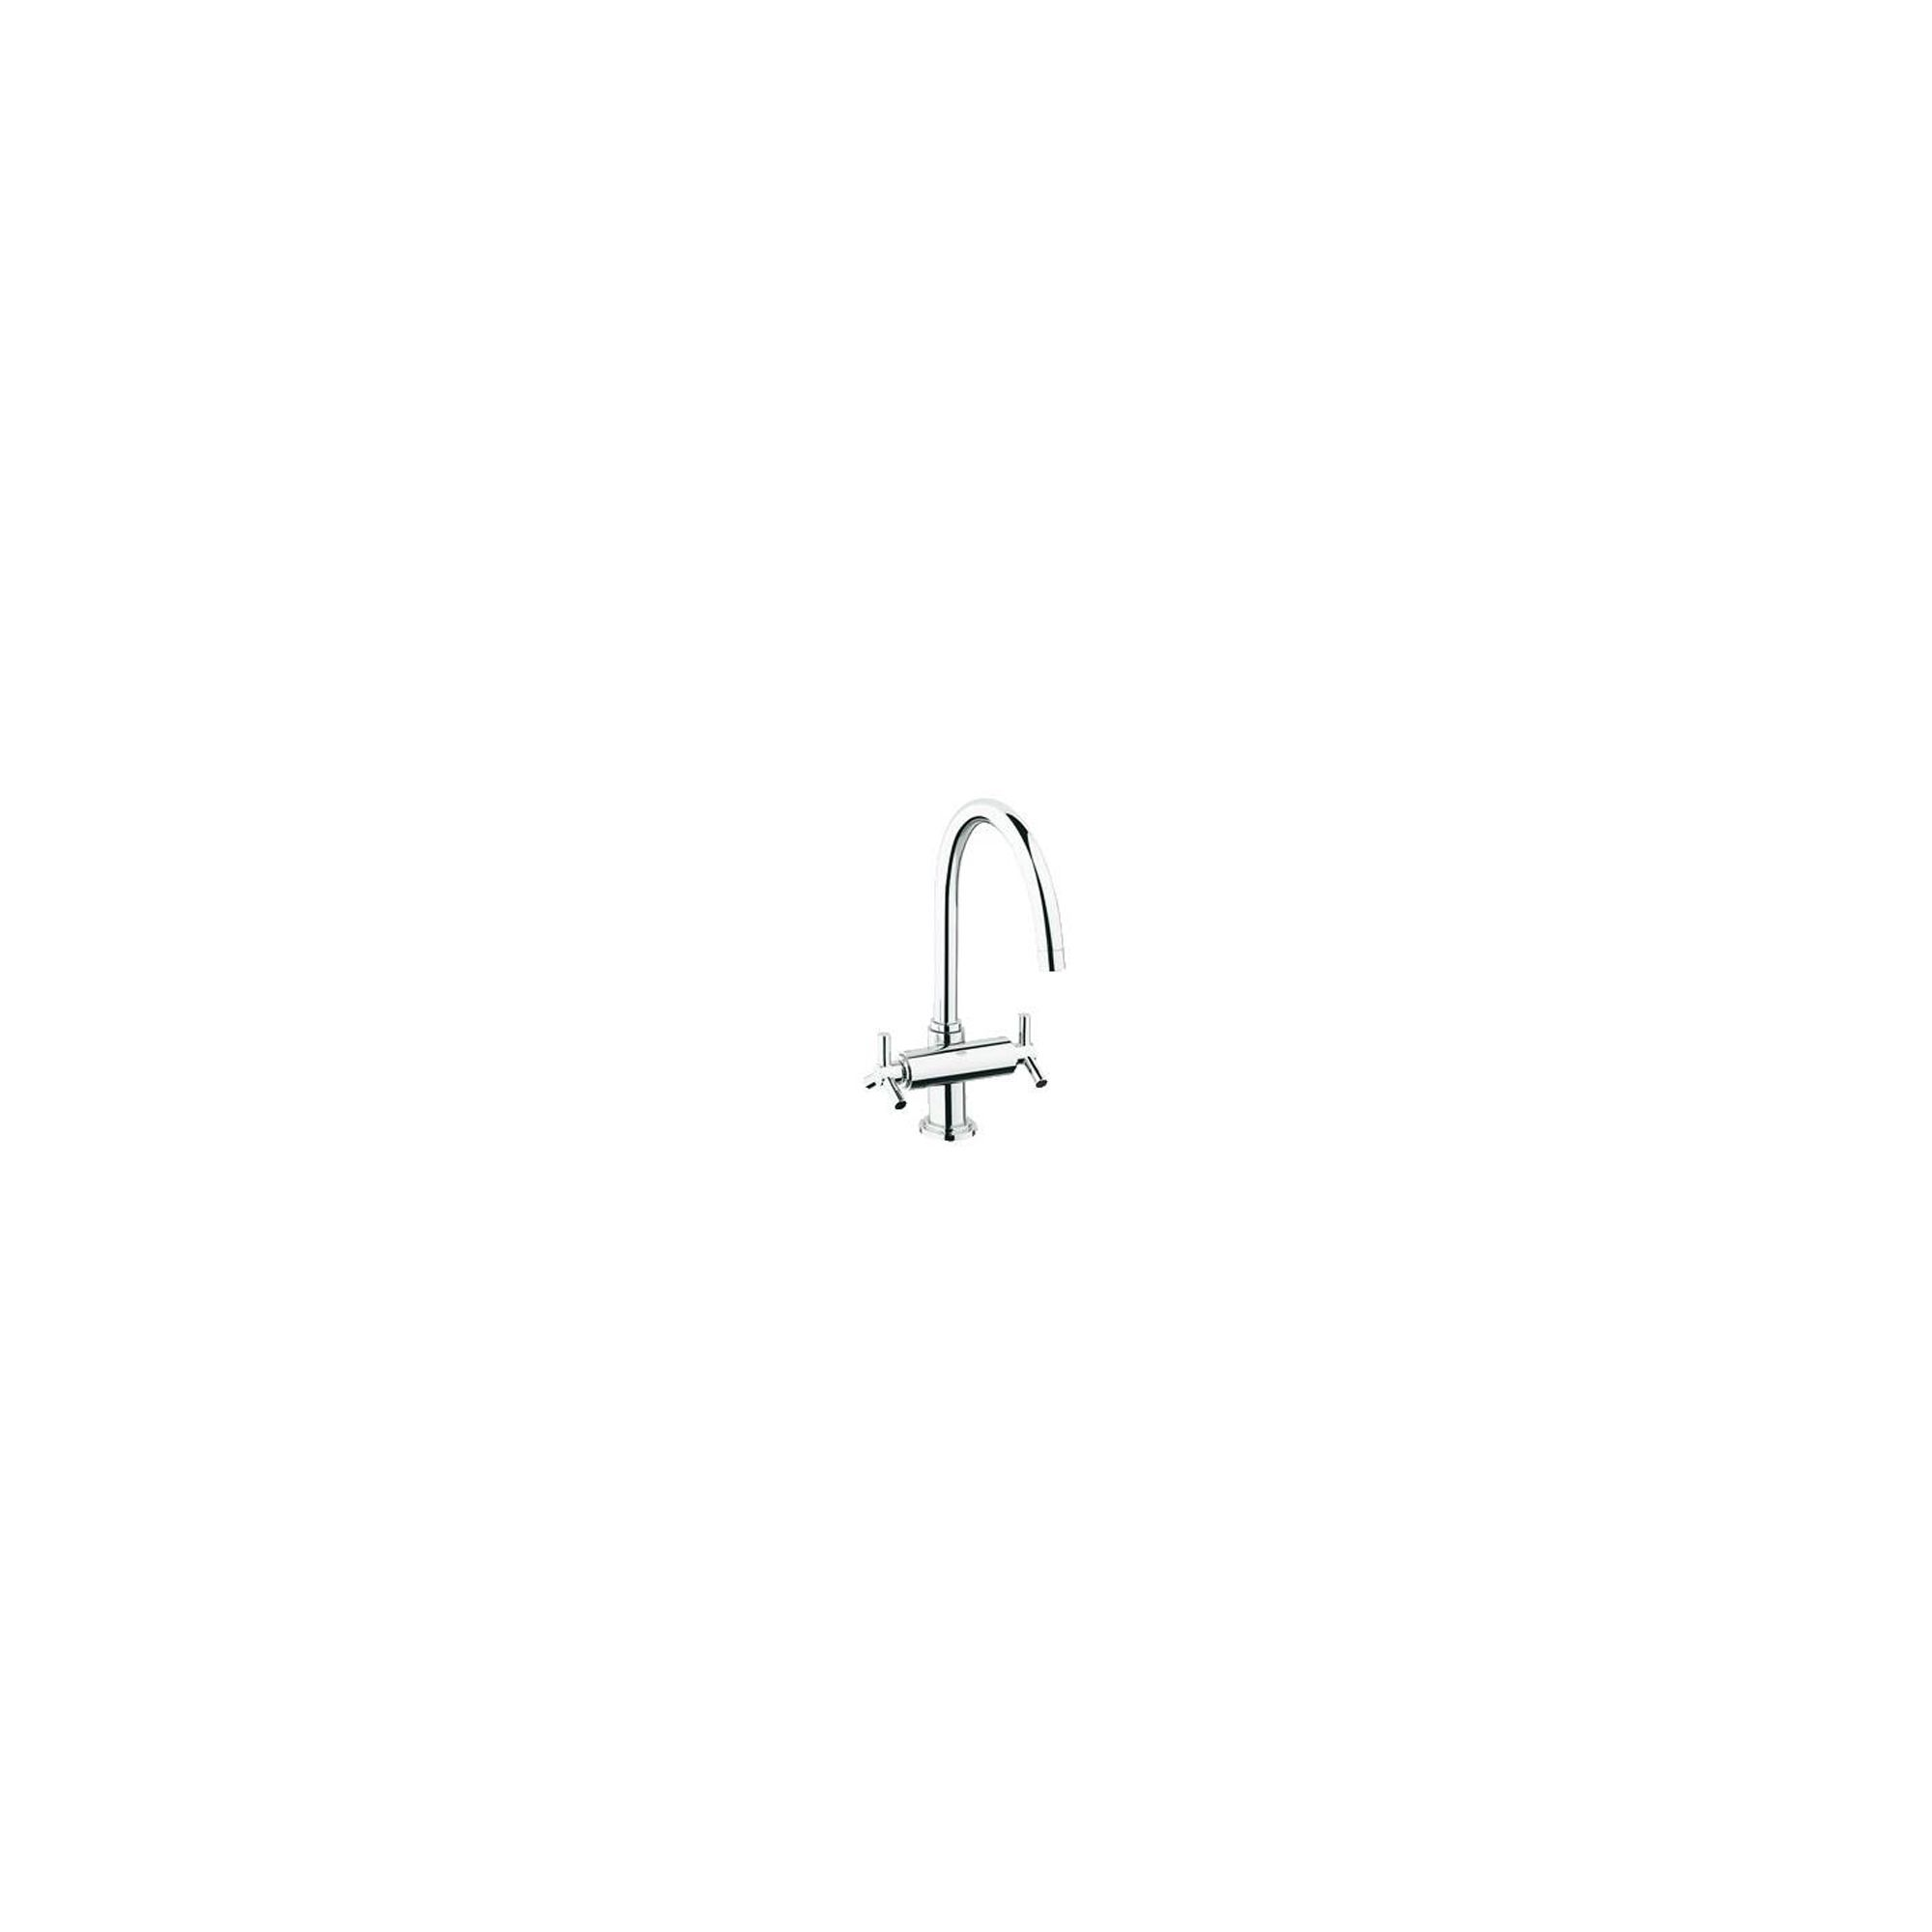 Grohe Ypsilon Mono Sink Mixer Tap, Dual Handle, Chrome at Tescos Direct